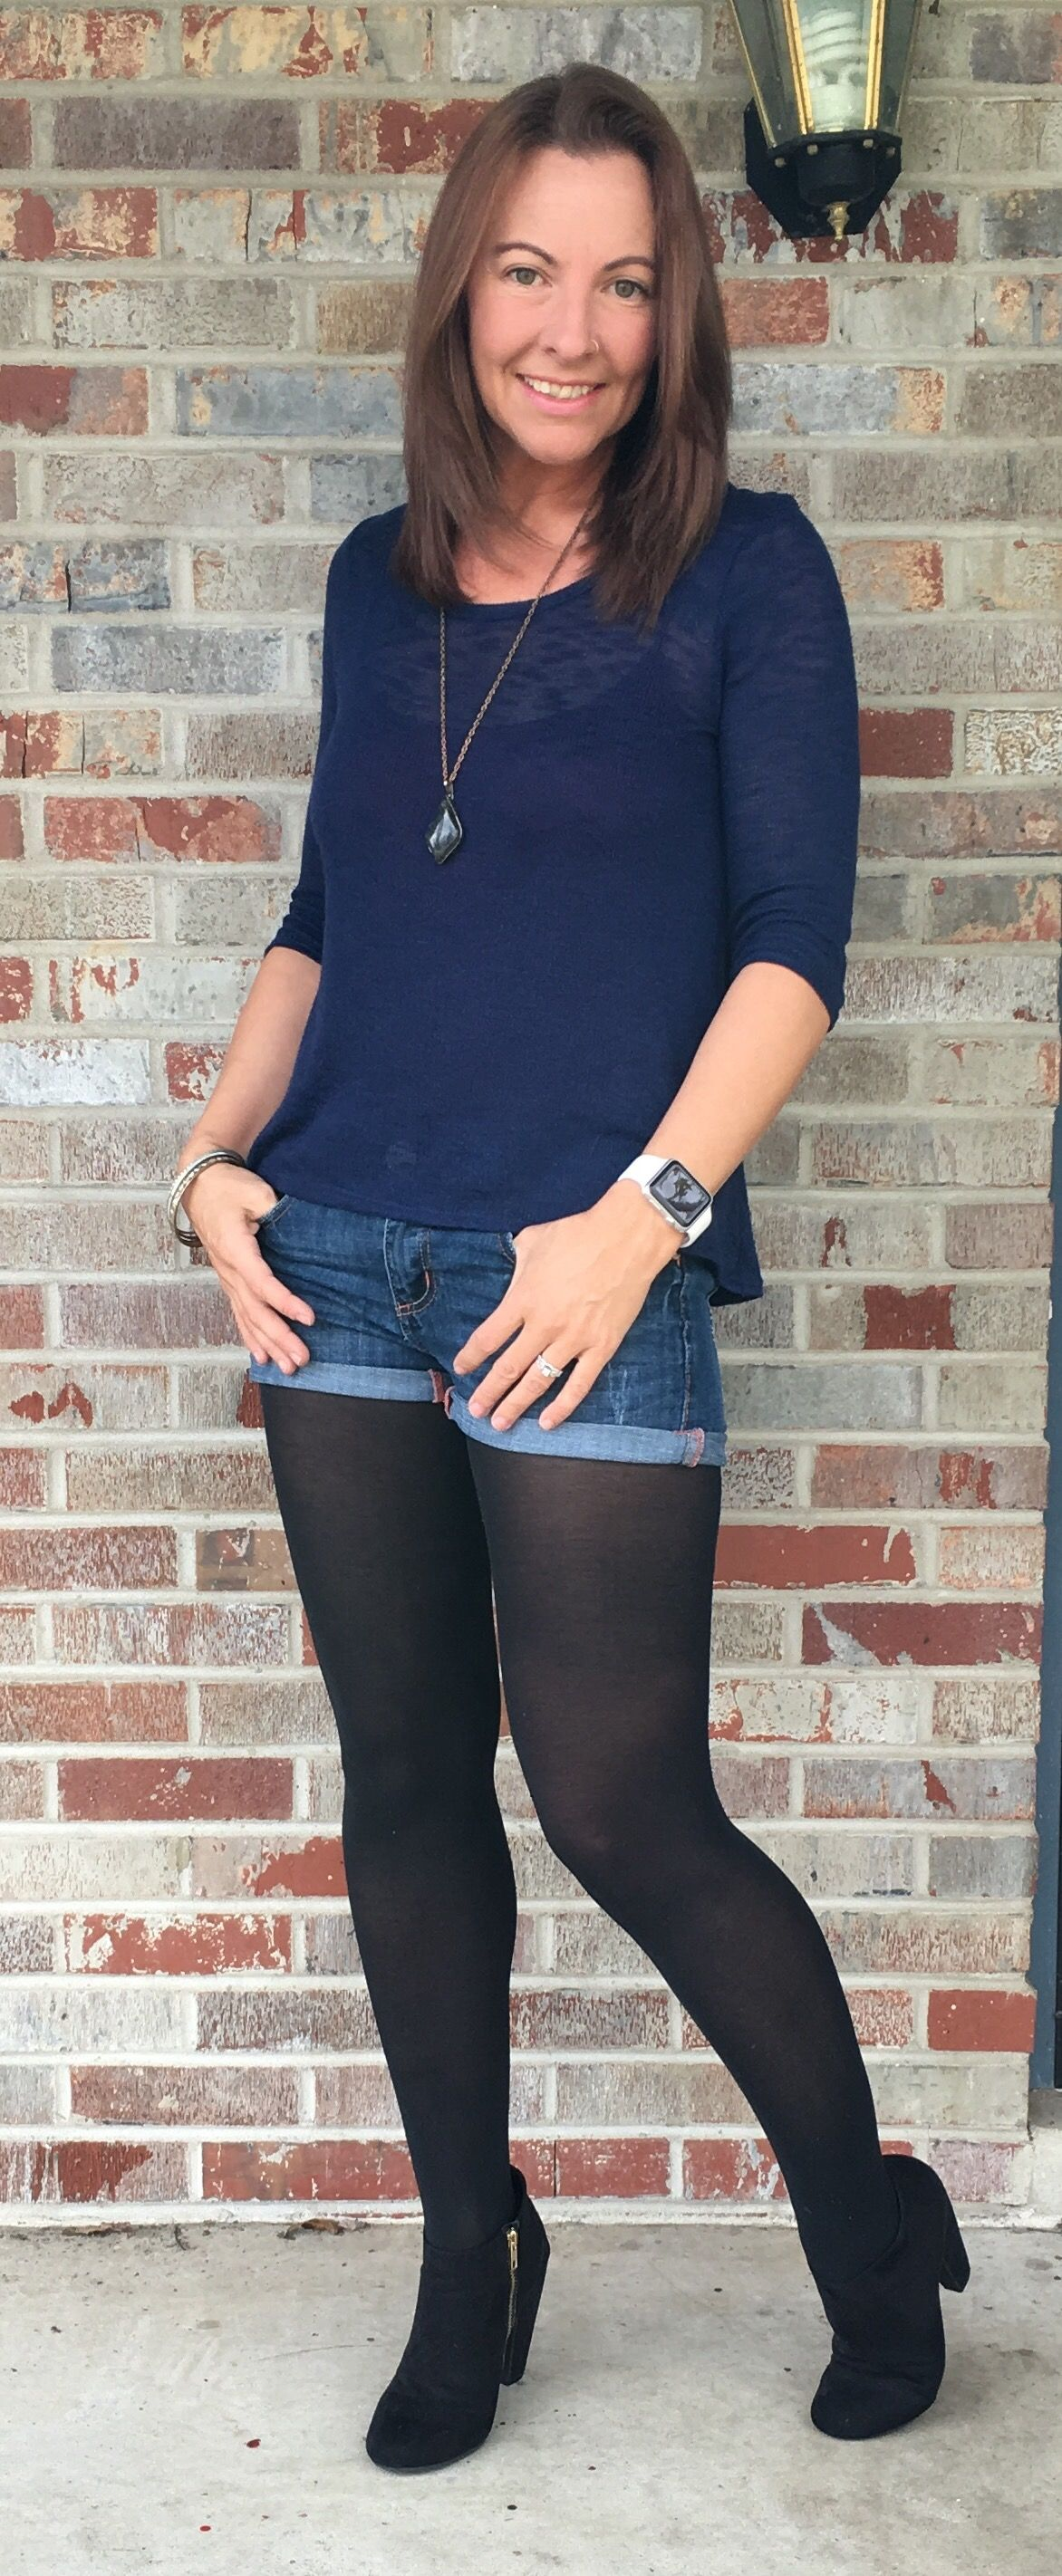 Women Wearing Rubber Riding Boots | Sock, Wearing Tights